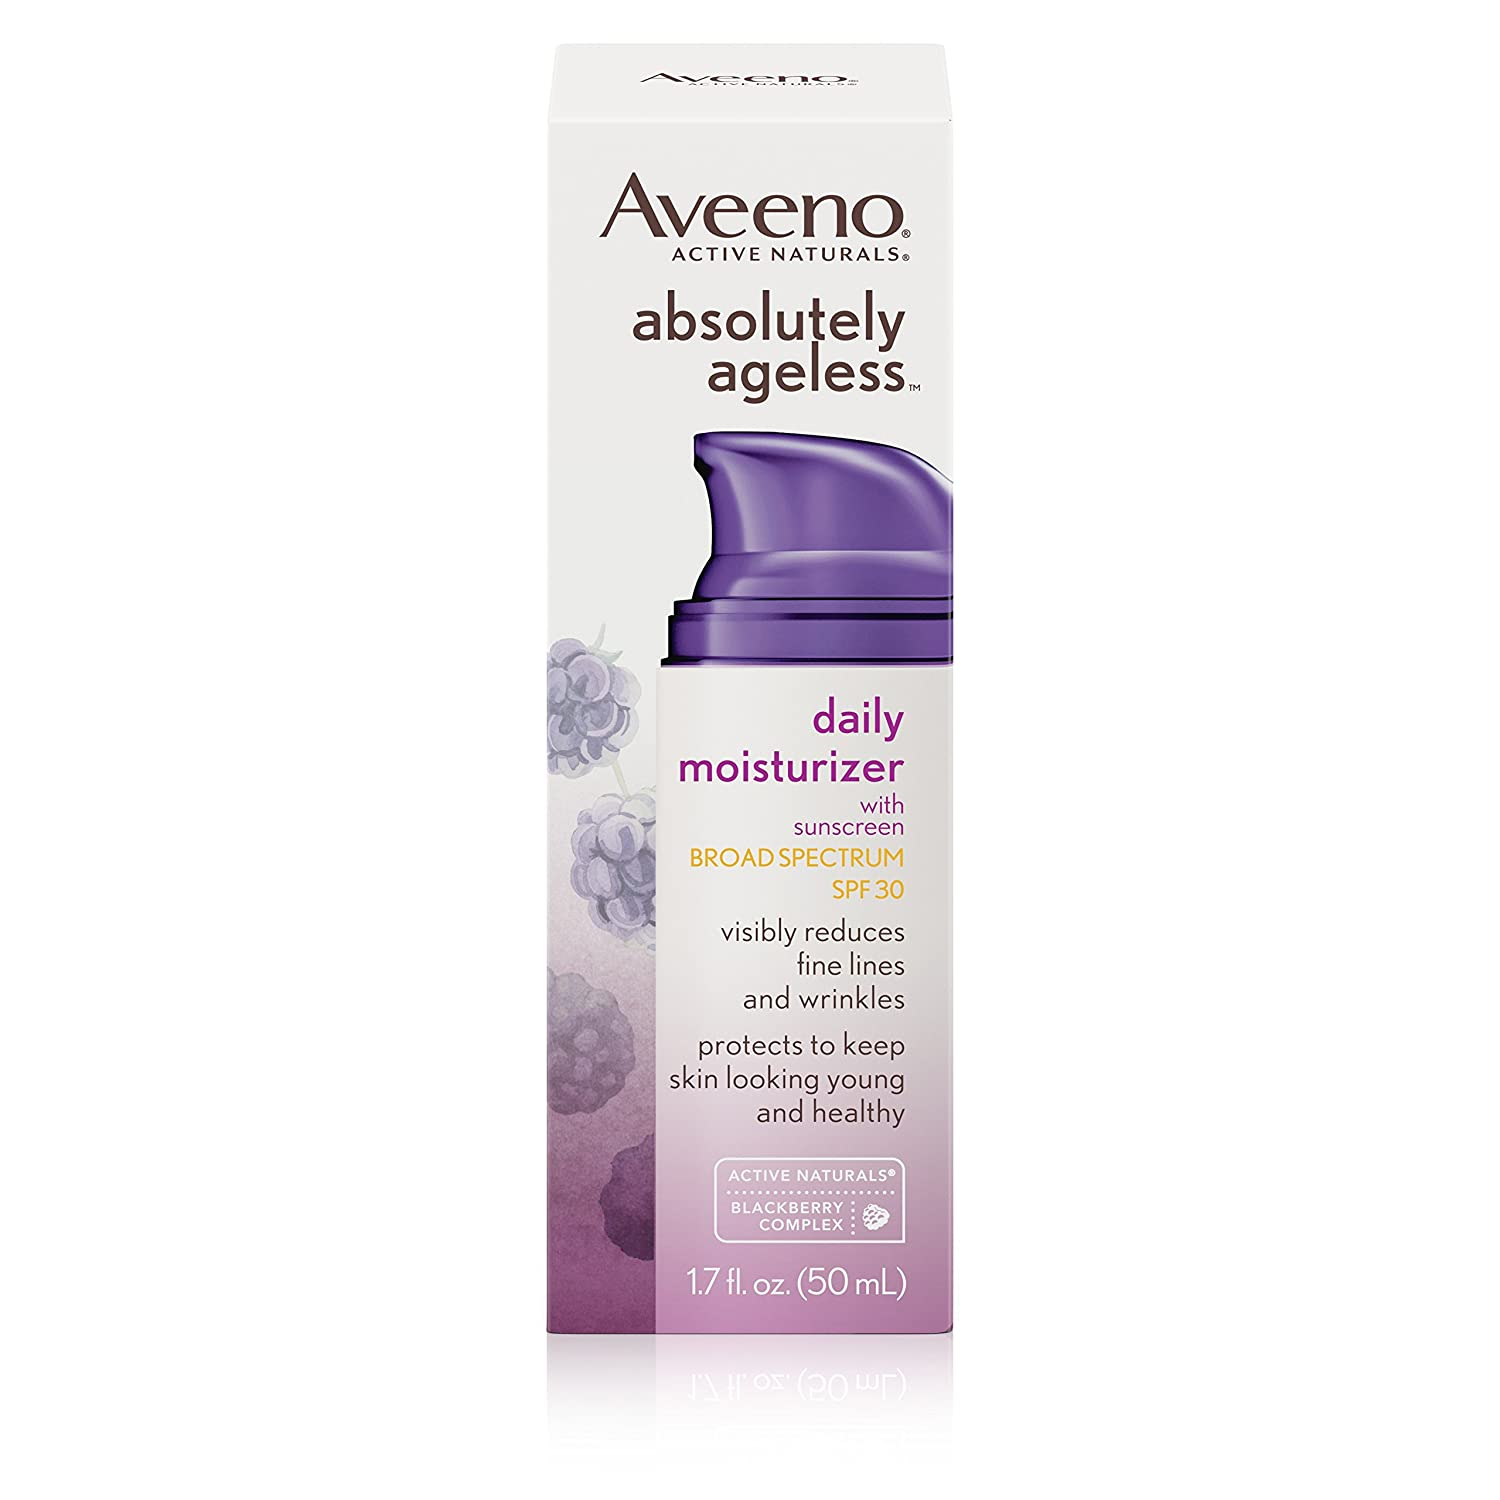 Aveeno Absolutely Ageless Daily Moisturizer 1.7 Ounce (50ml) (3 Pack)